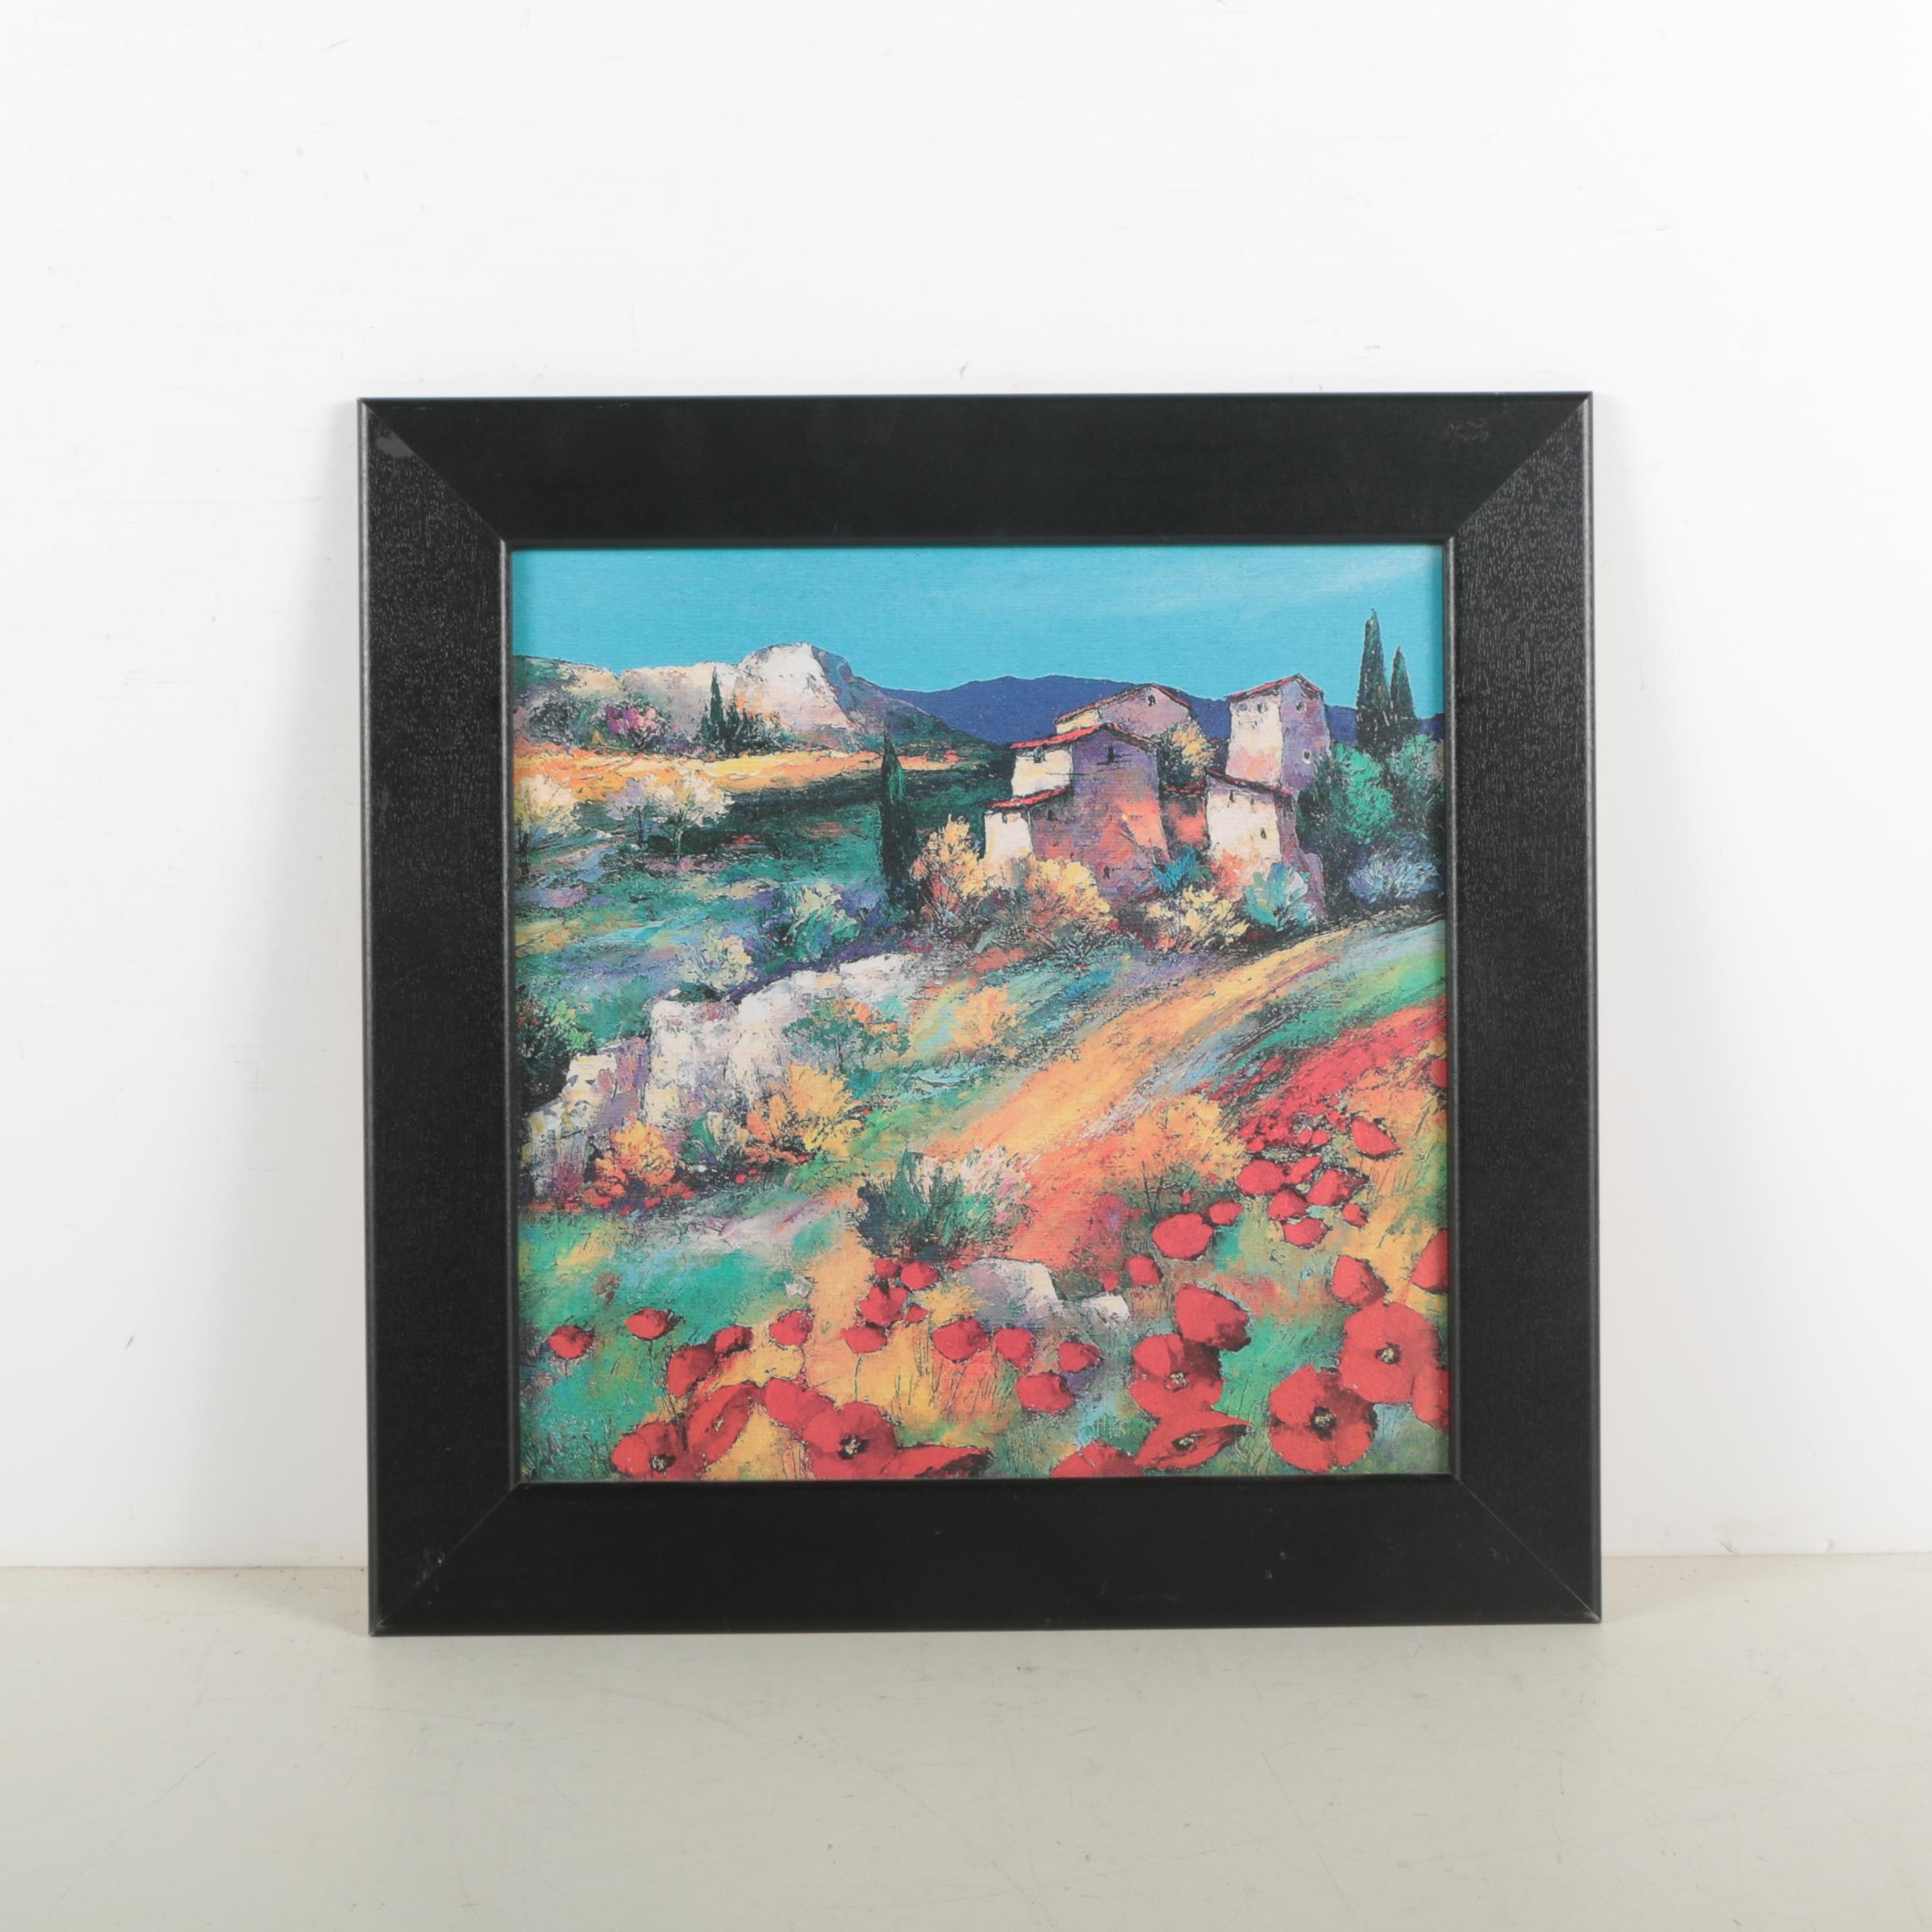 Offset Lithograph After Southwestern Style Town Painting